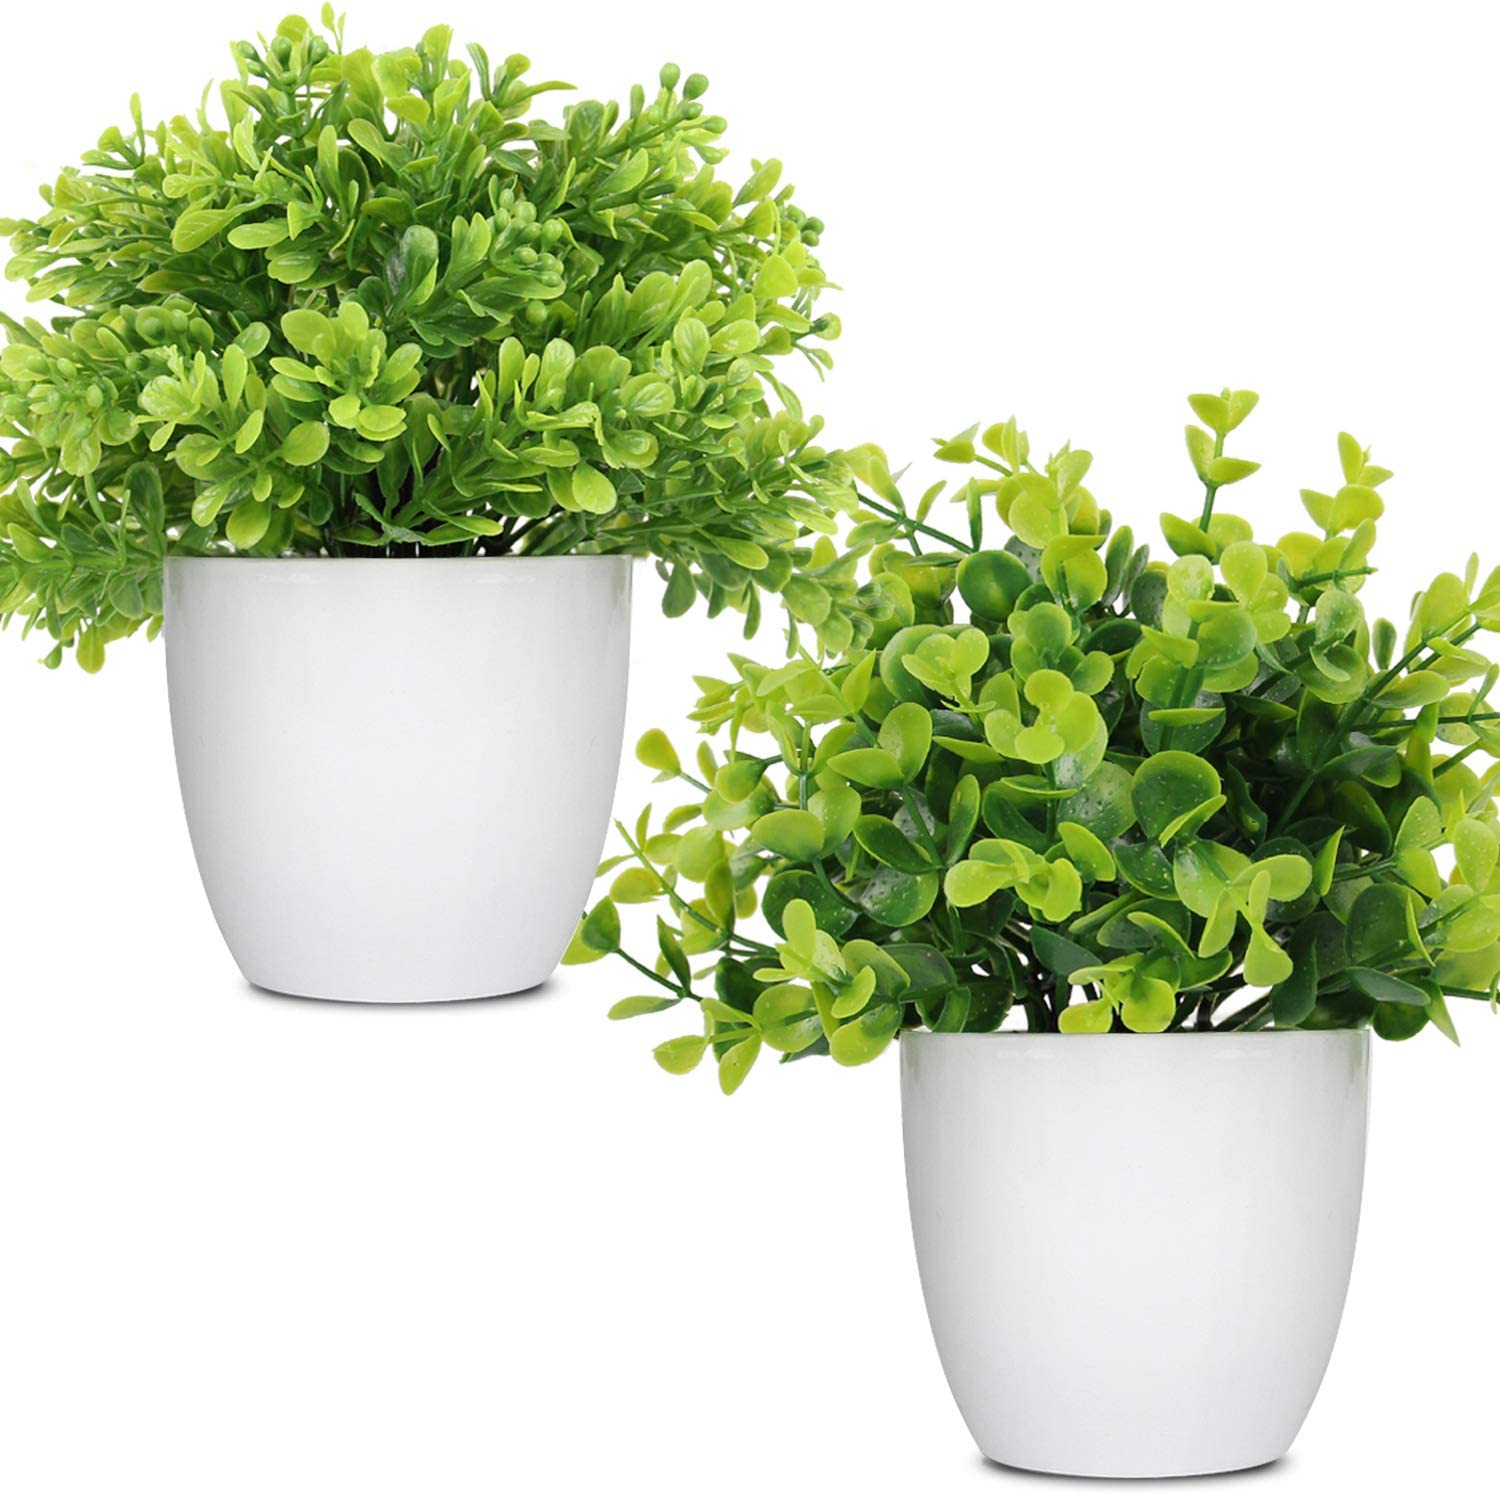 LELEE Artificial Potted Plants Mini Fake Plants,2 Pack Small Eucalyptus Potted Faux Decorative Grass Plant with White Plastic Pot for Home Decor, Indoor, Office, Desk, Table Decoration